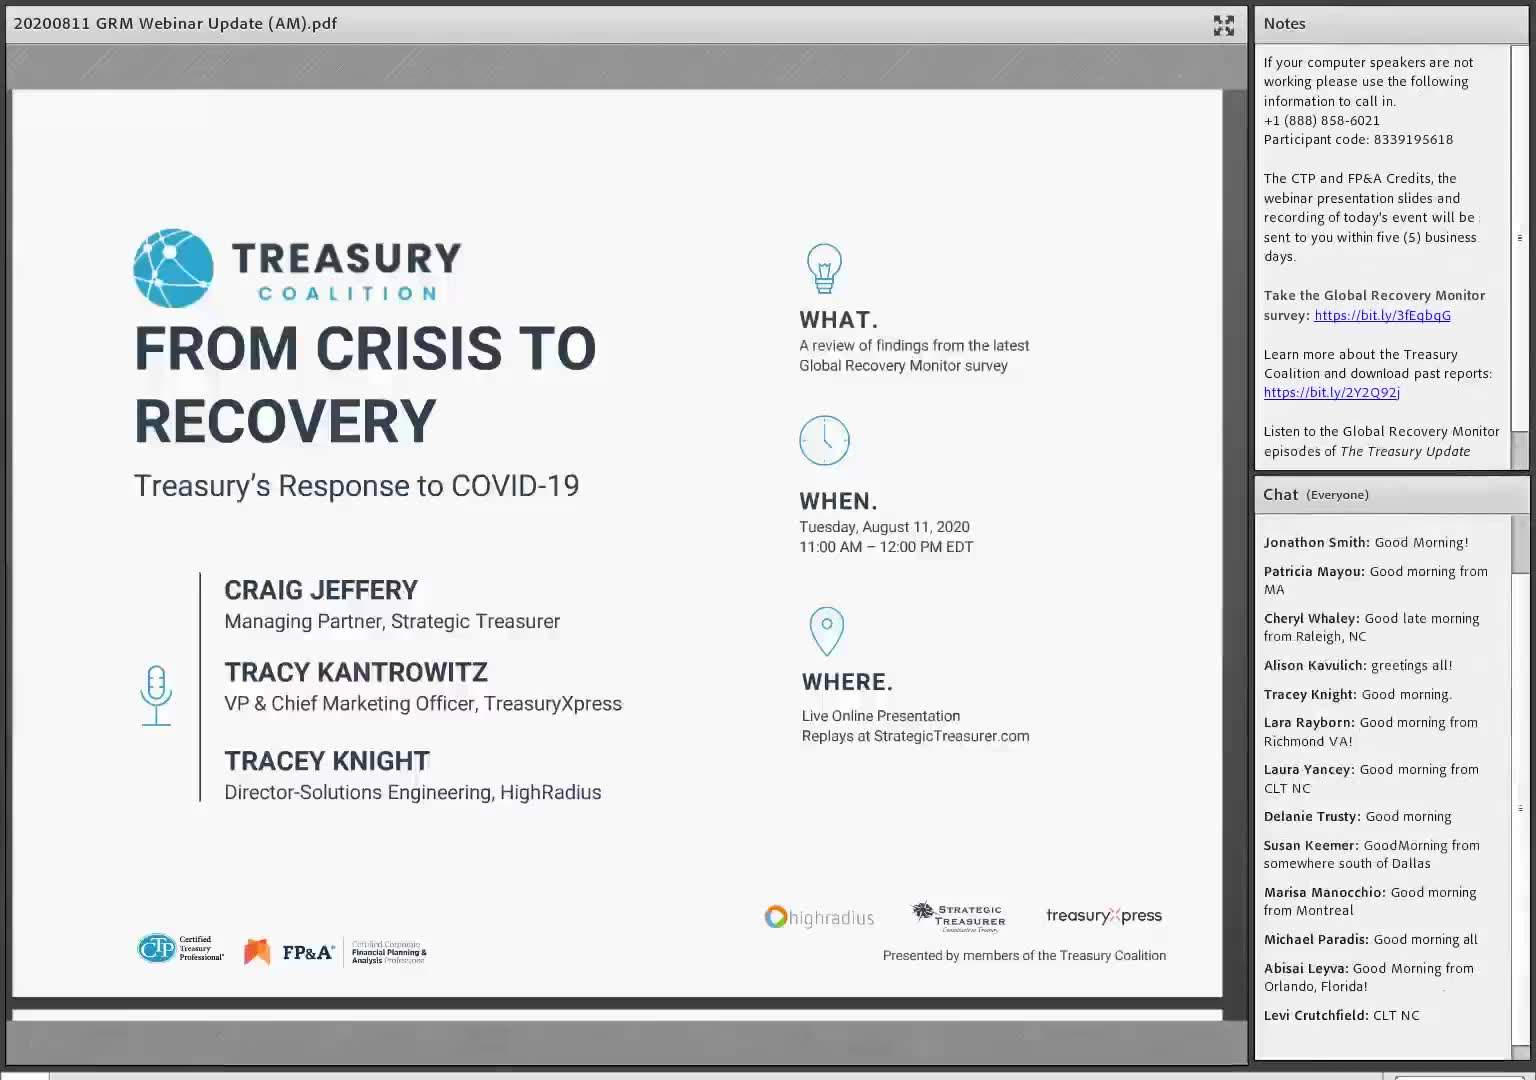 A Review of COVID-19's Impact on Treasury: From Crisis to Recovery